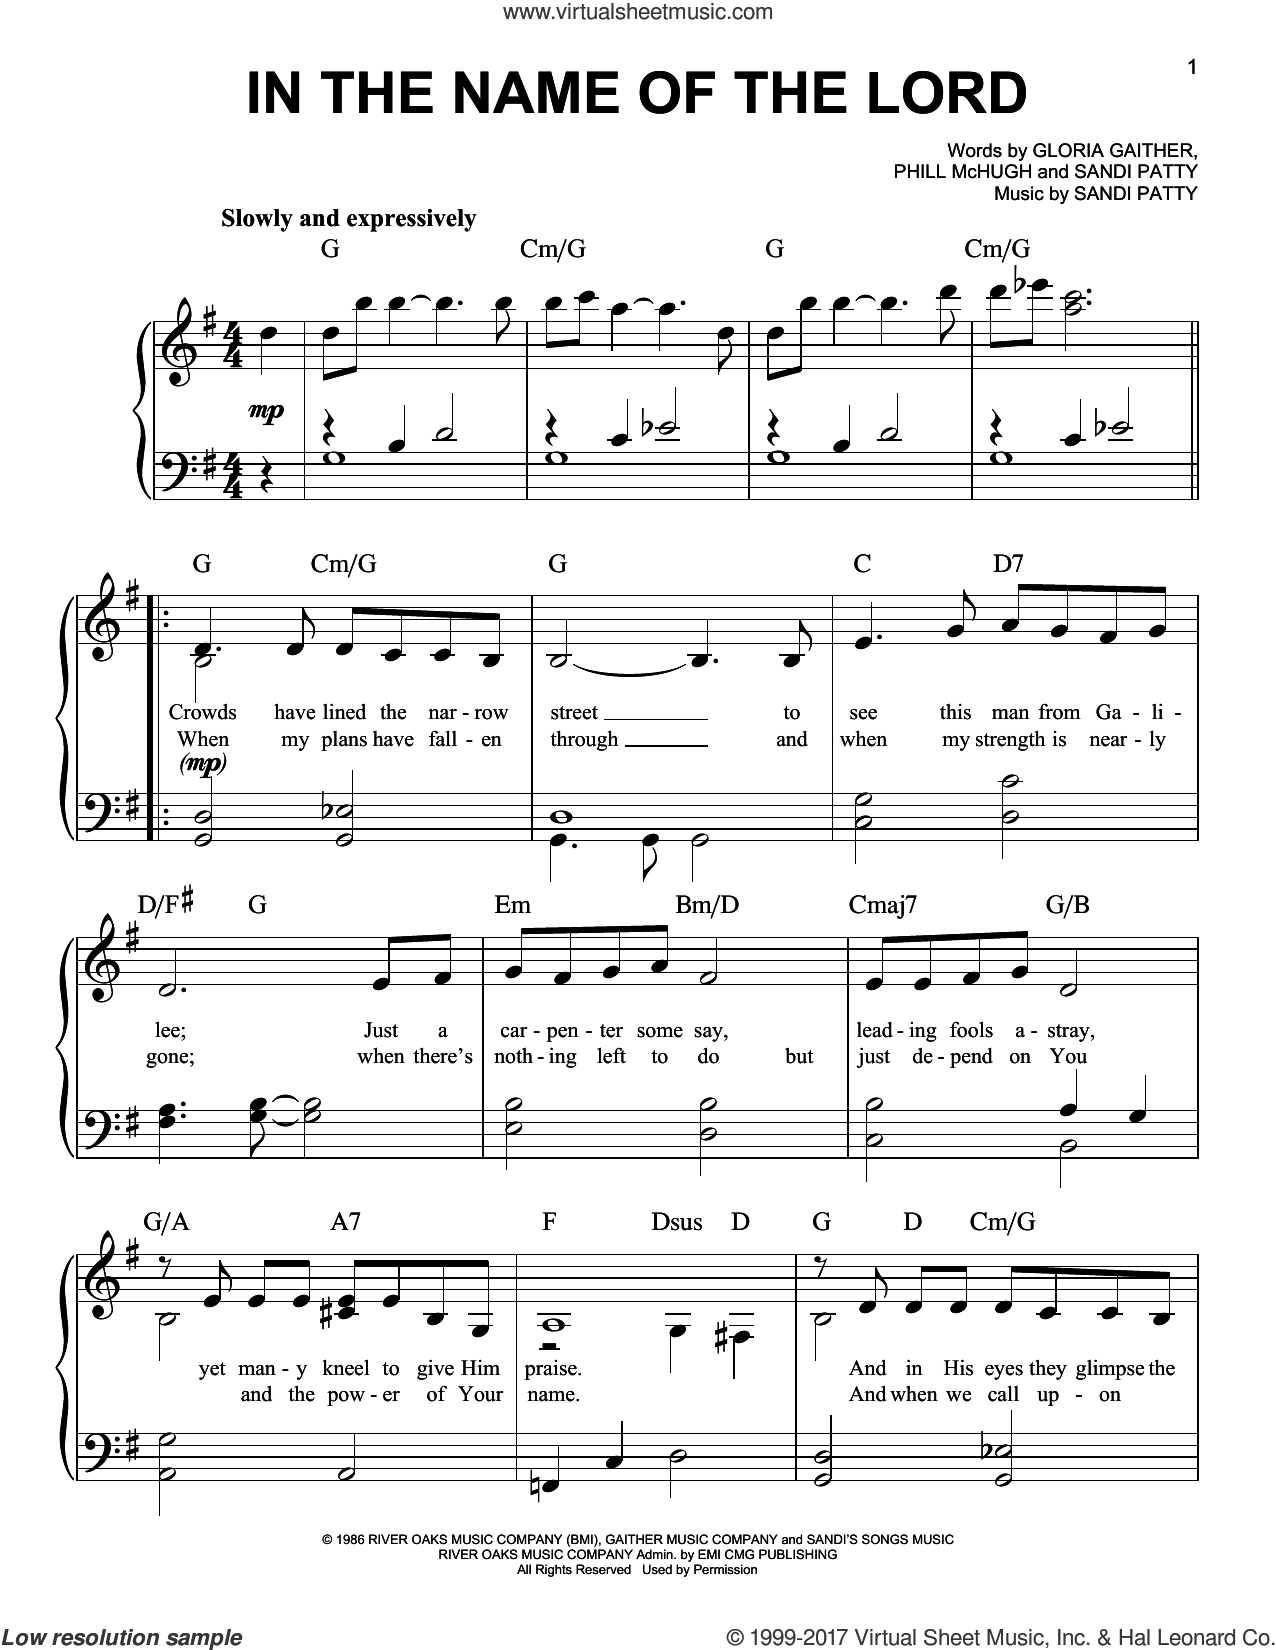 In The Name Of The Lord sheet music for piano solo by Sandi Patty, Gloria Gaither and Phill McHugh, easy skill level